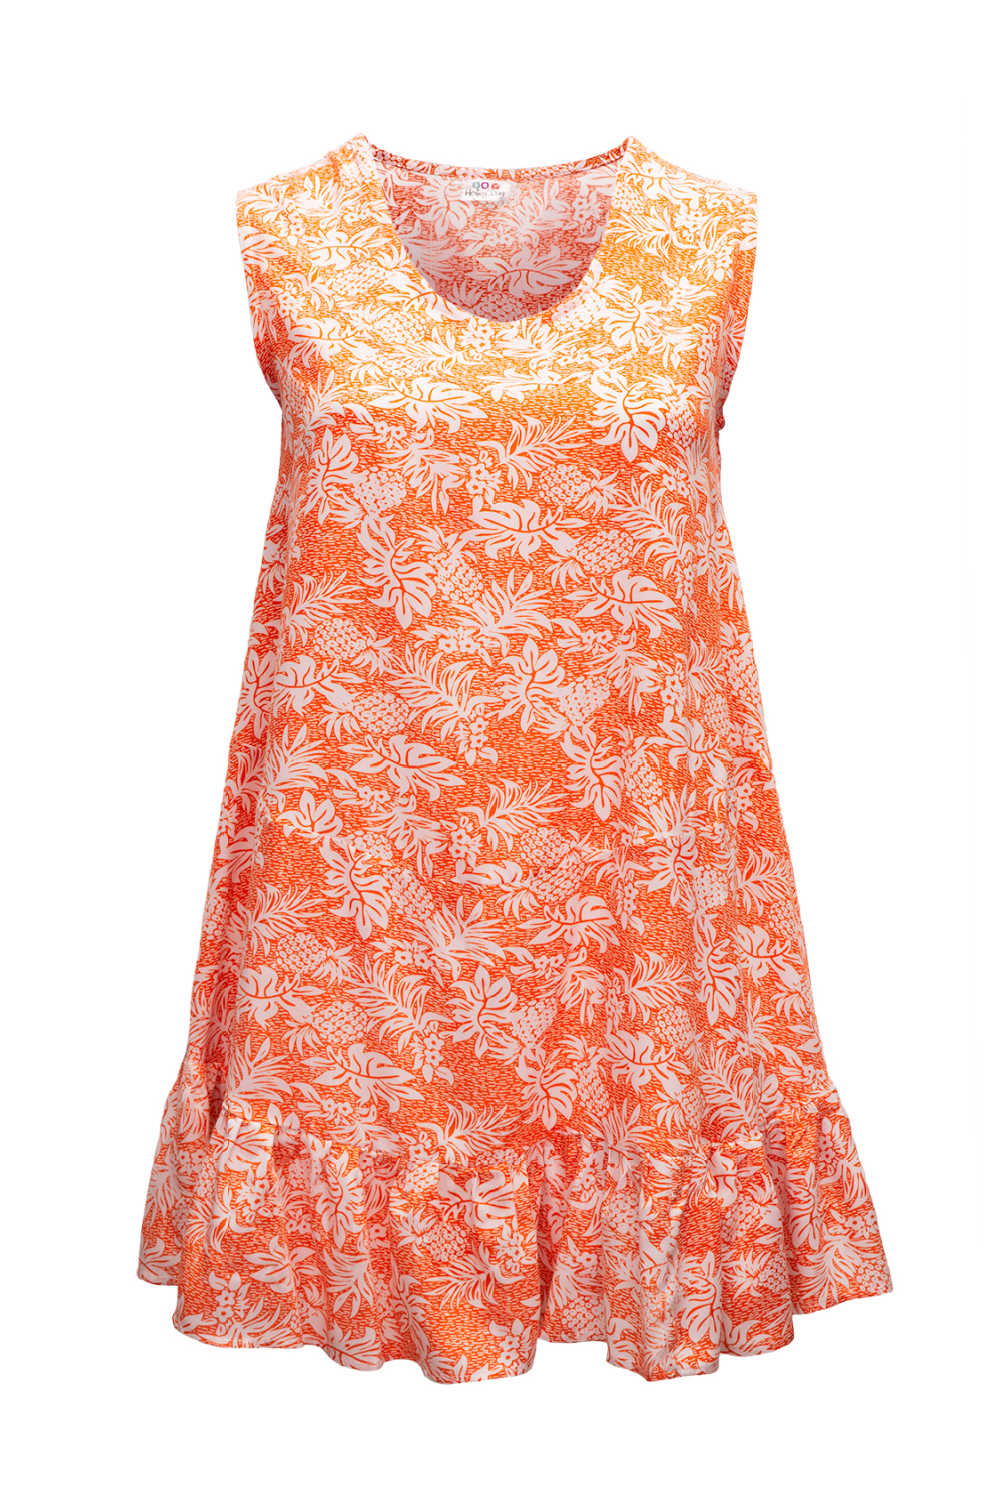 summer-dress-white-orange-pineapple-print-design